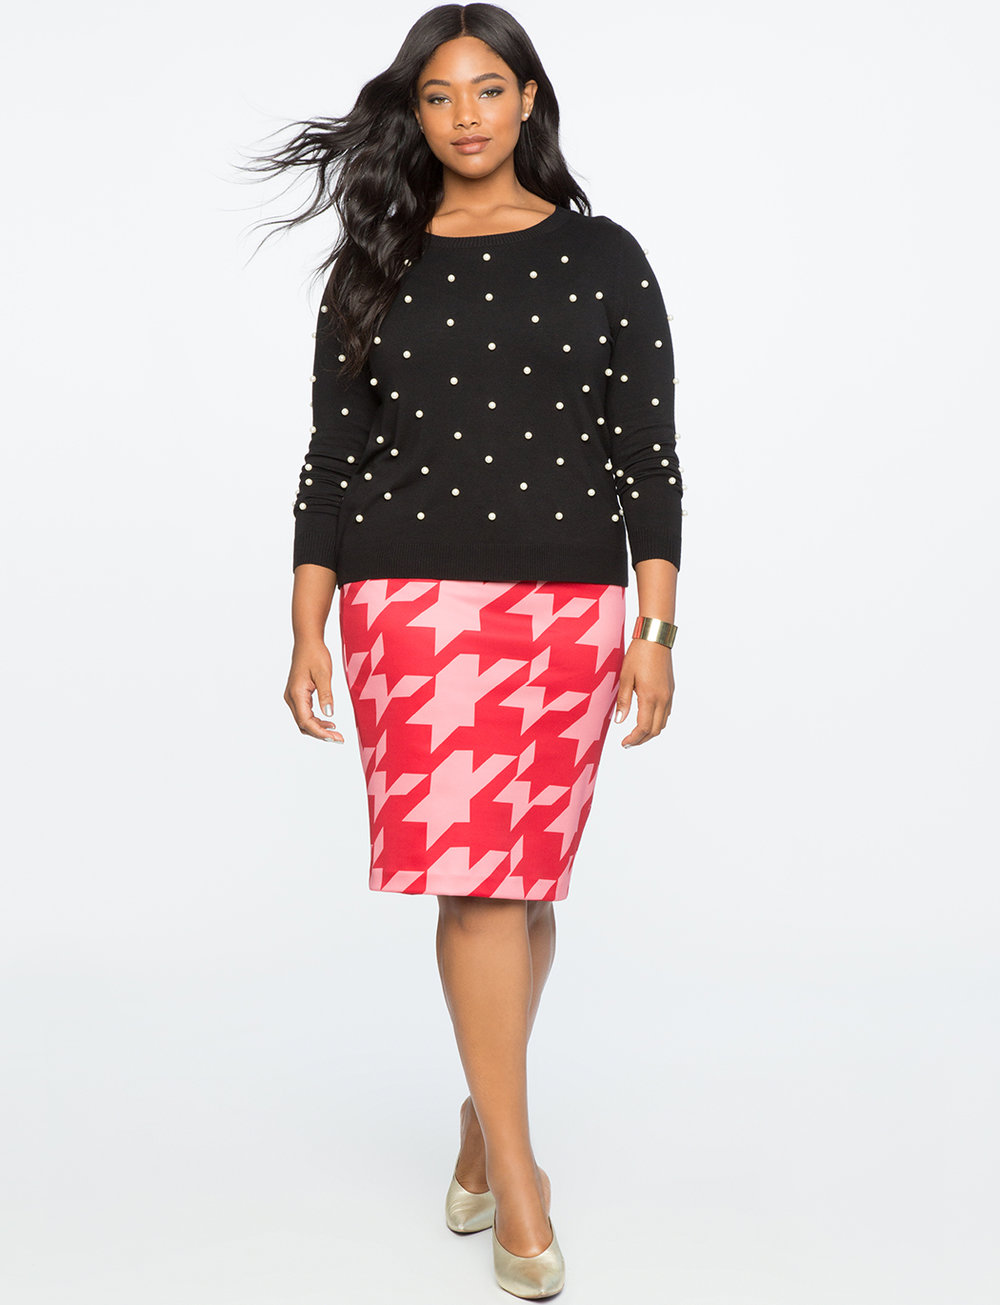 Neoprene Pencil Skirt. Available in a zillion colors, prints. Eloquii. $69 + 50% off with code: YESPLEASE.